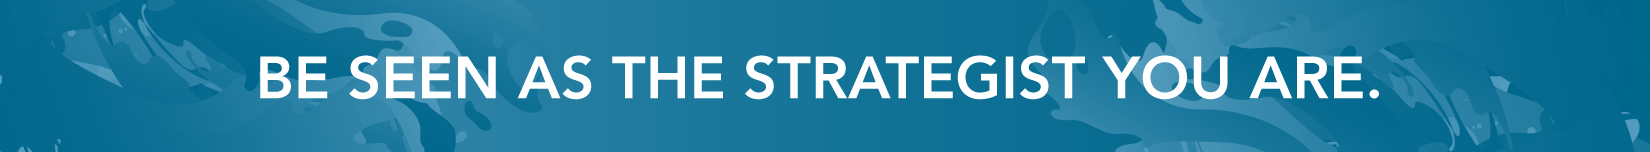 Be see as the strategist you are at the AORN Executive Leadership Summit in New Orleans, March 24-27, 2018